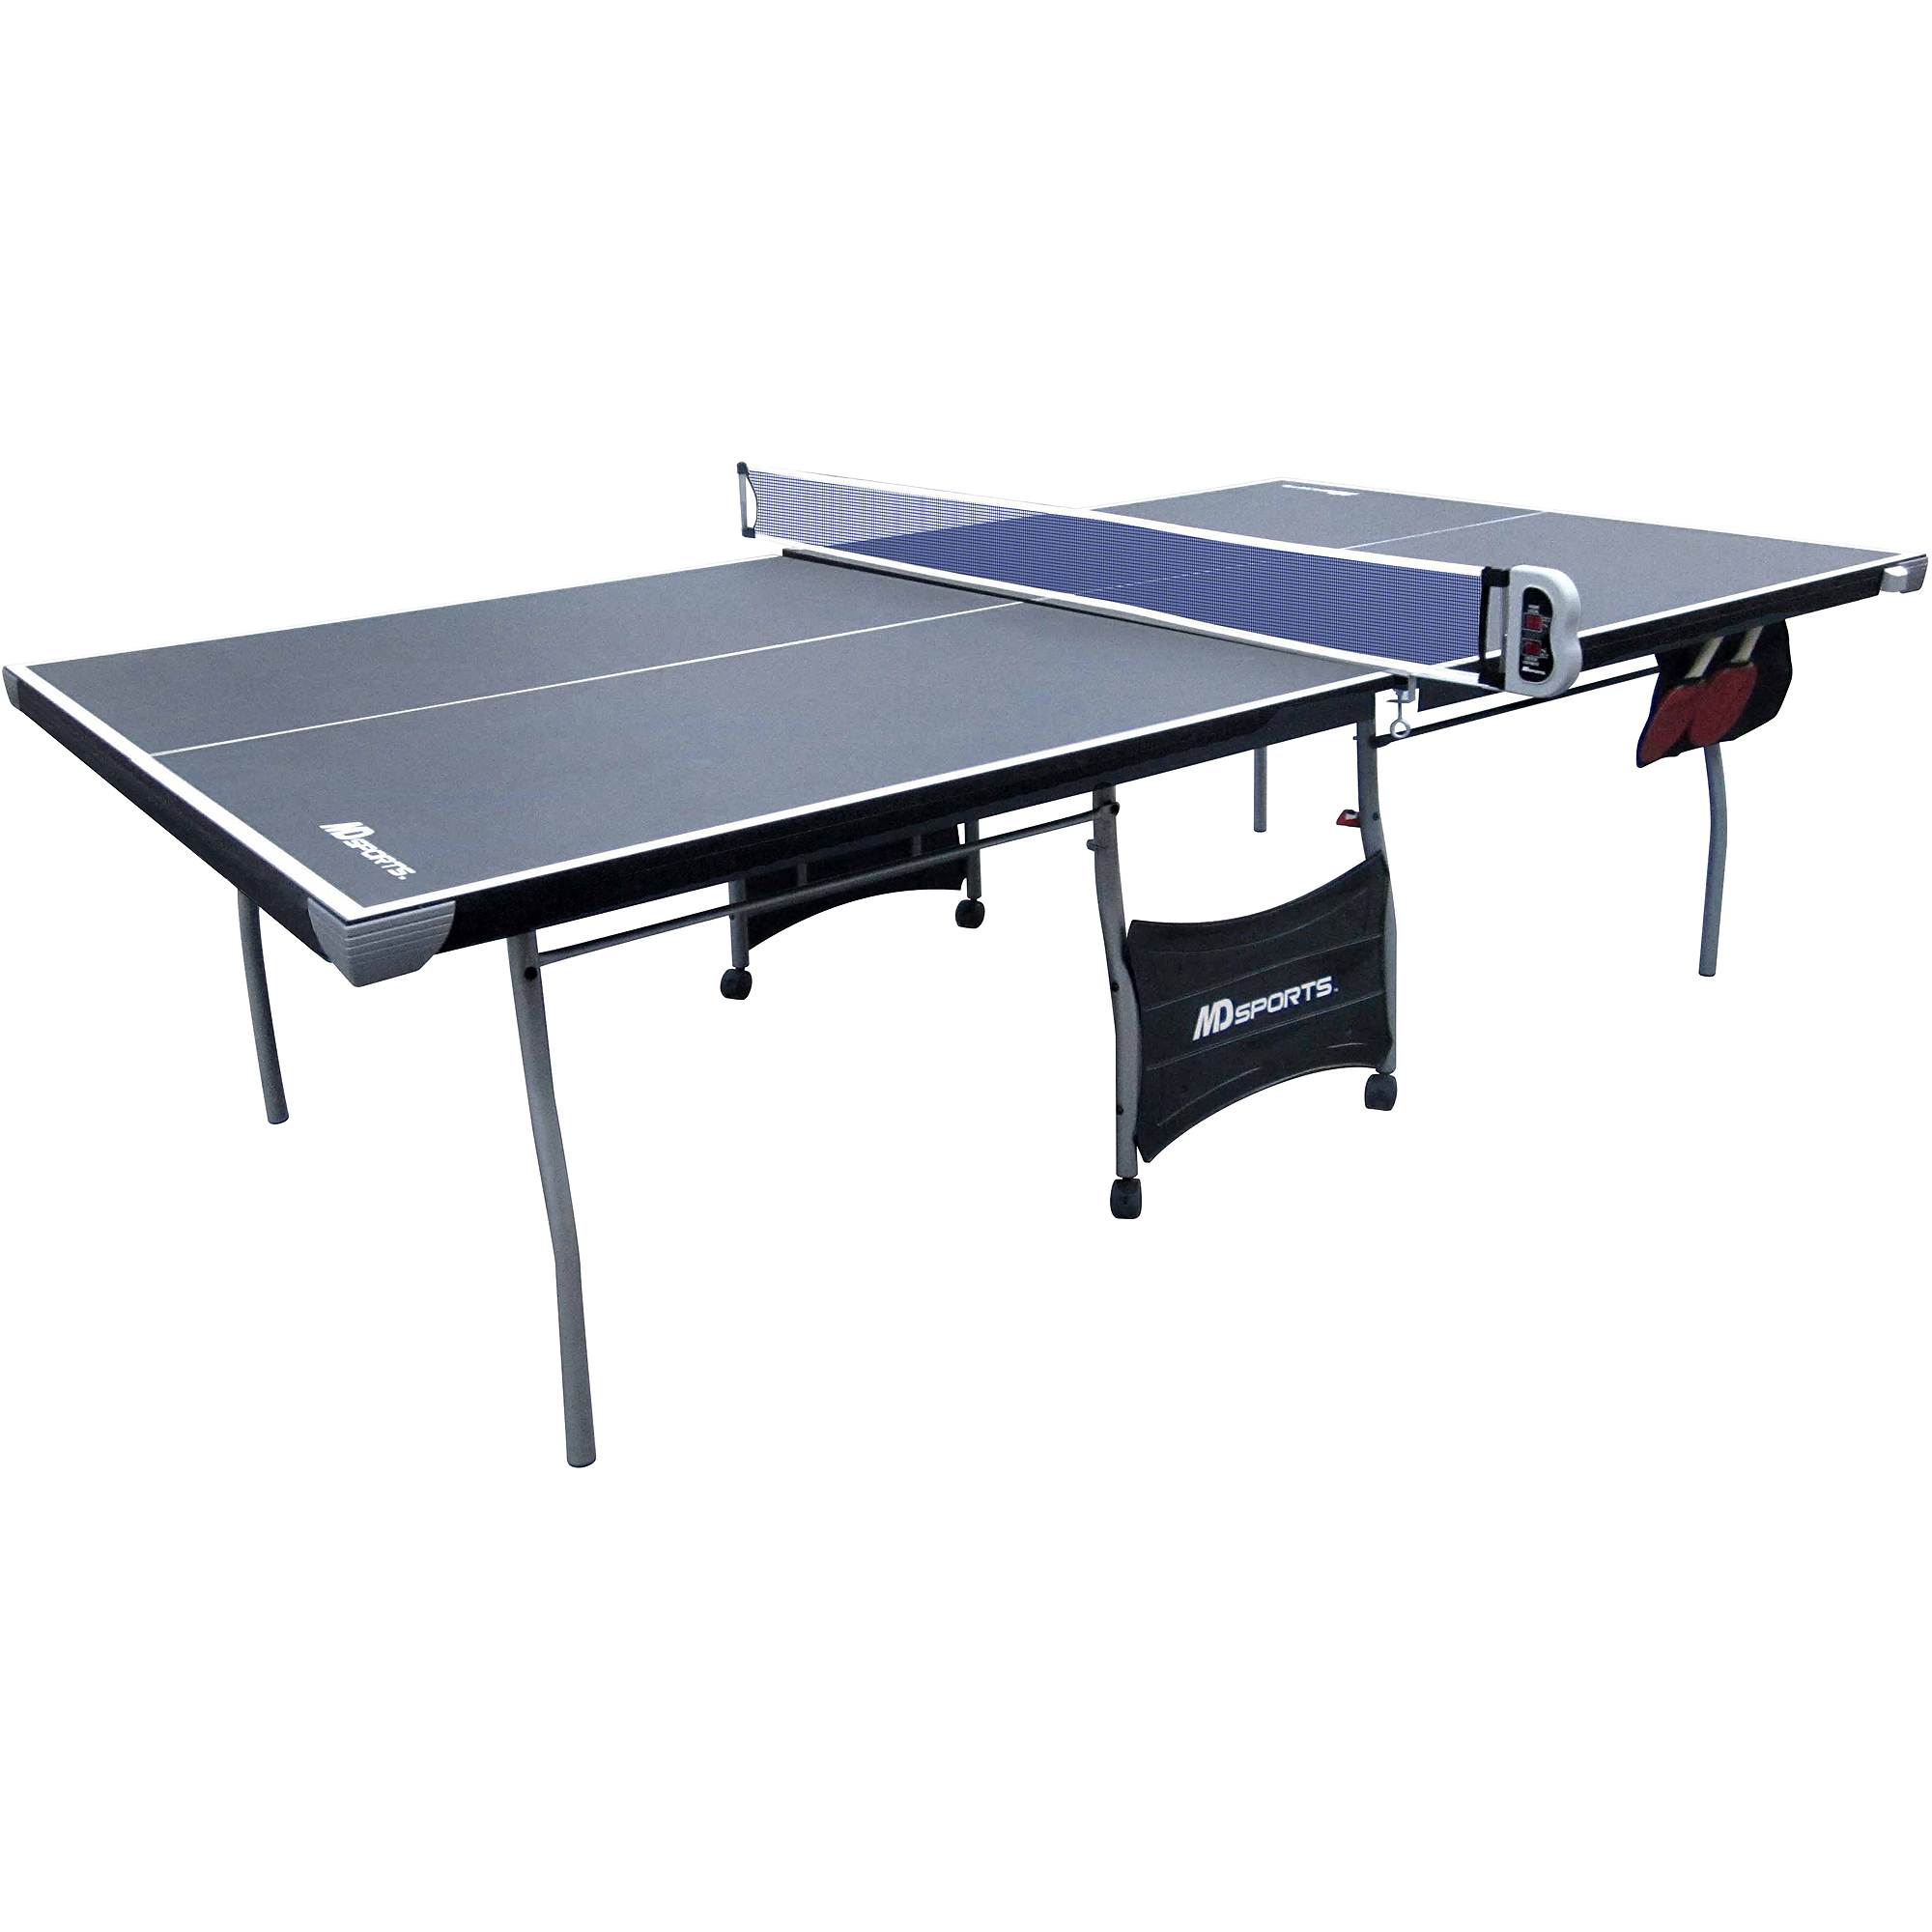 Charming Medal Sports Indoor Recreational 4 Piece Table Tennis Table With Electronic  Scorer